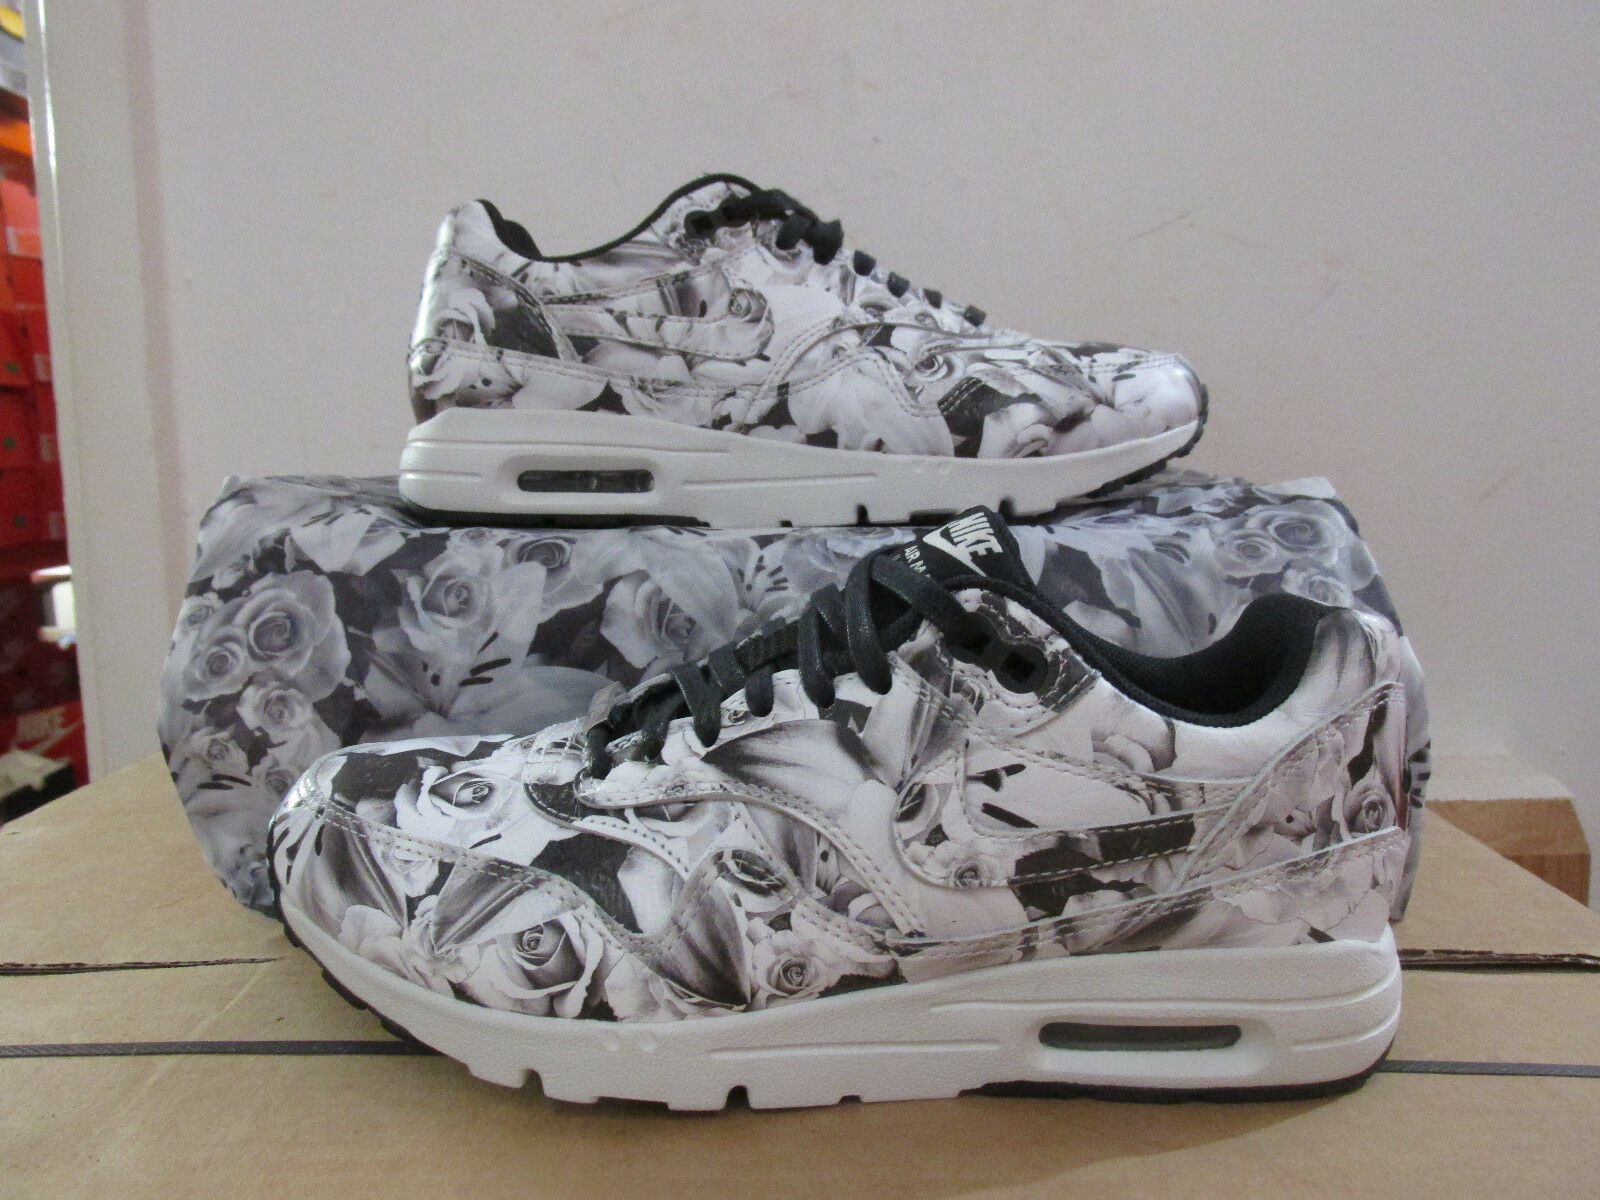 Nike womens air max 1 ultra LOTC city collection trainers 747105 001 CLEARANCE